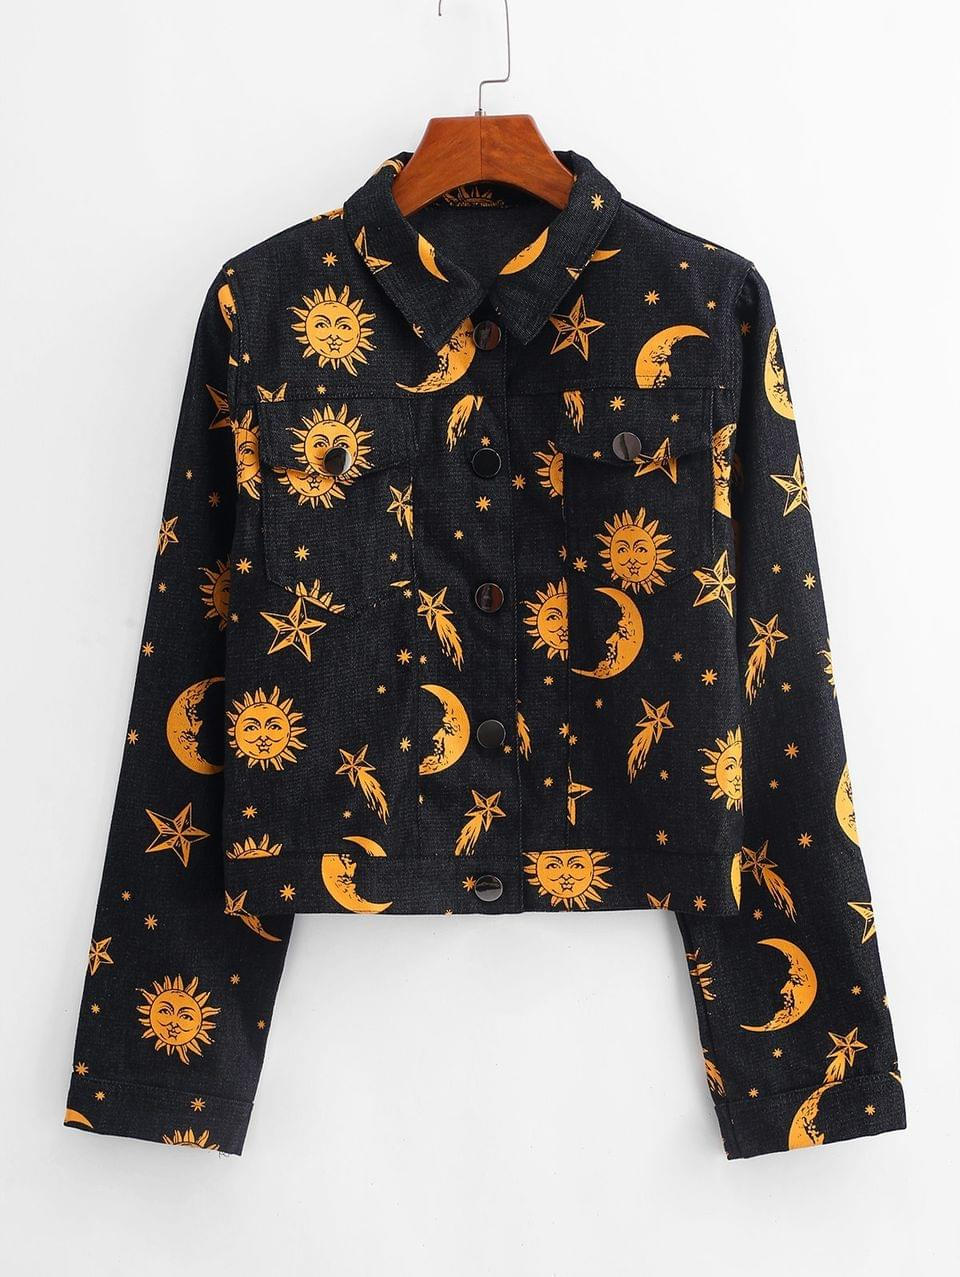 Women's Button Up Star Sun And Moon Denim Jacket - Black M